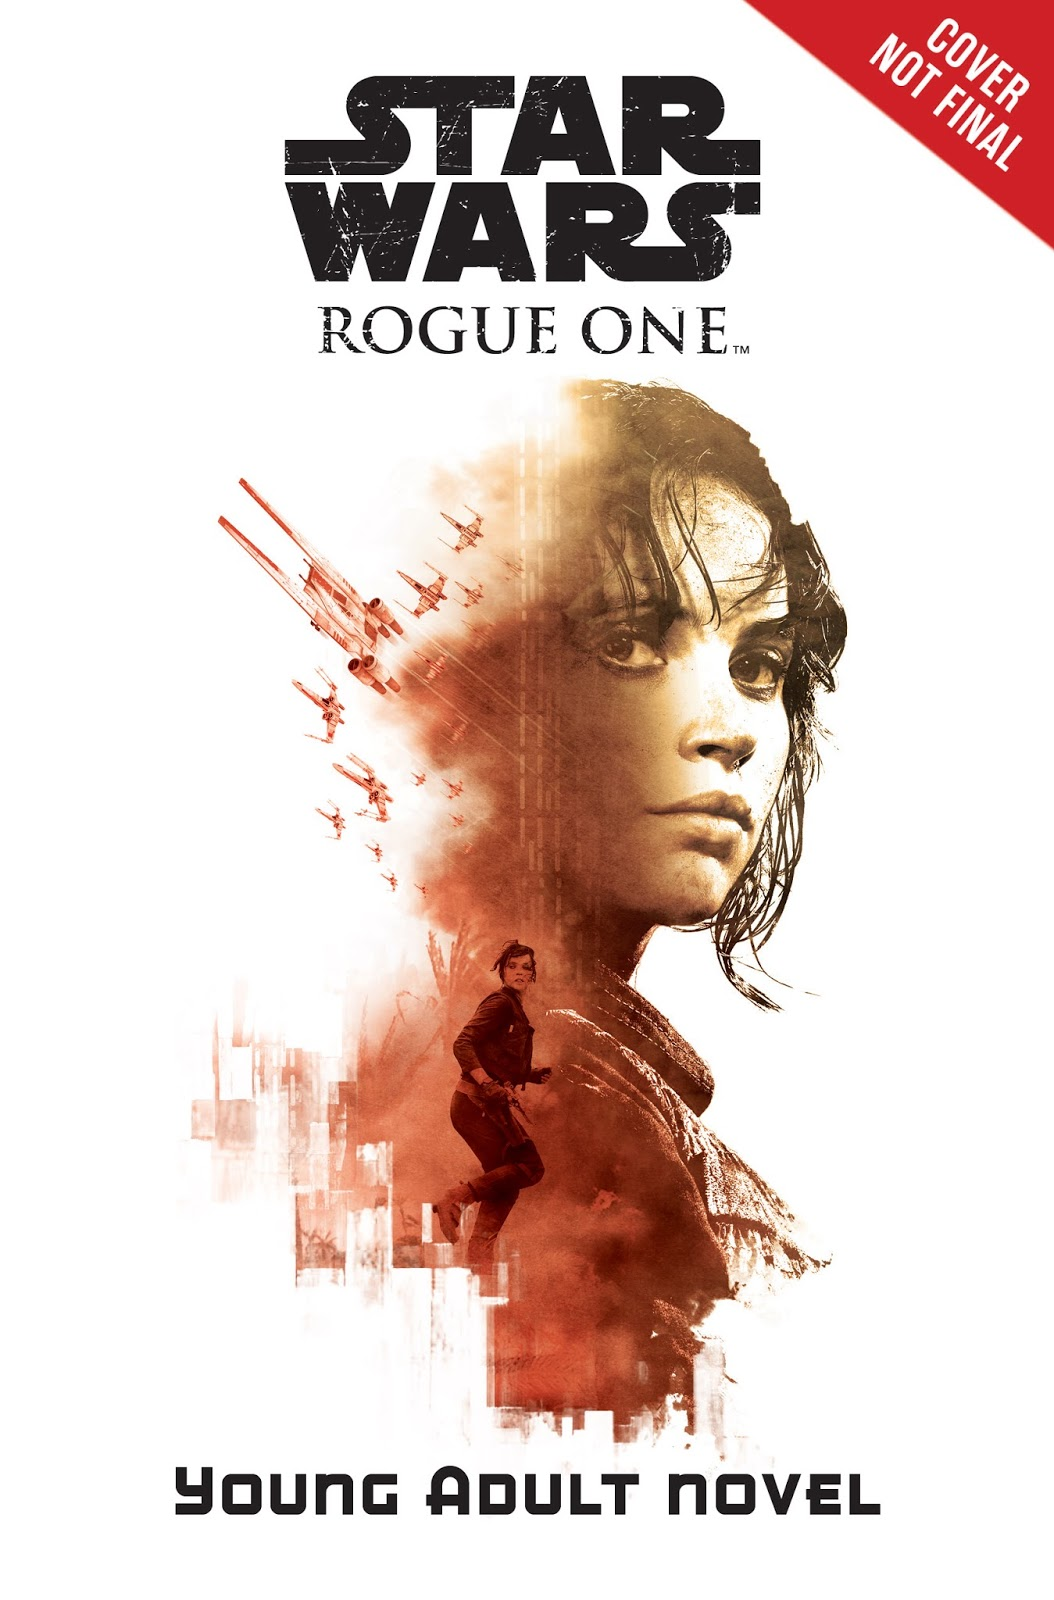 rogue one yong adult